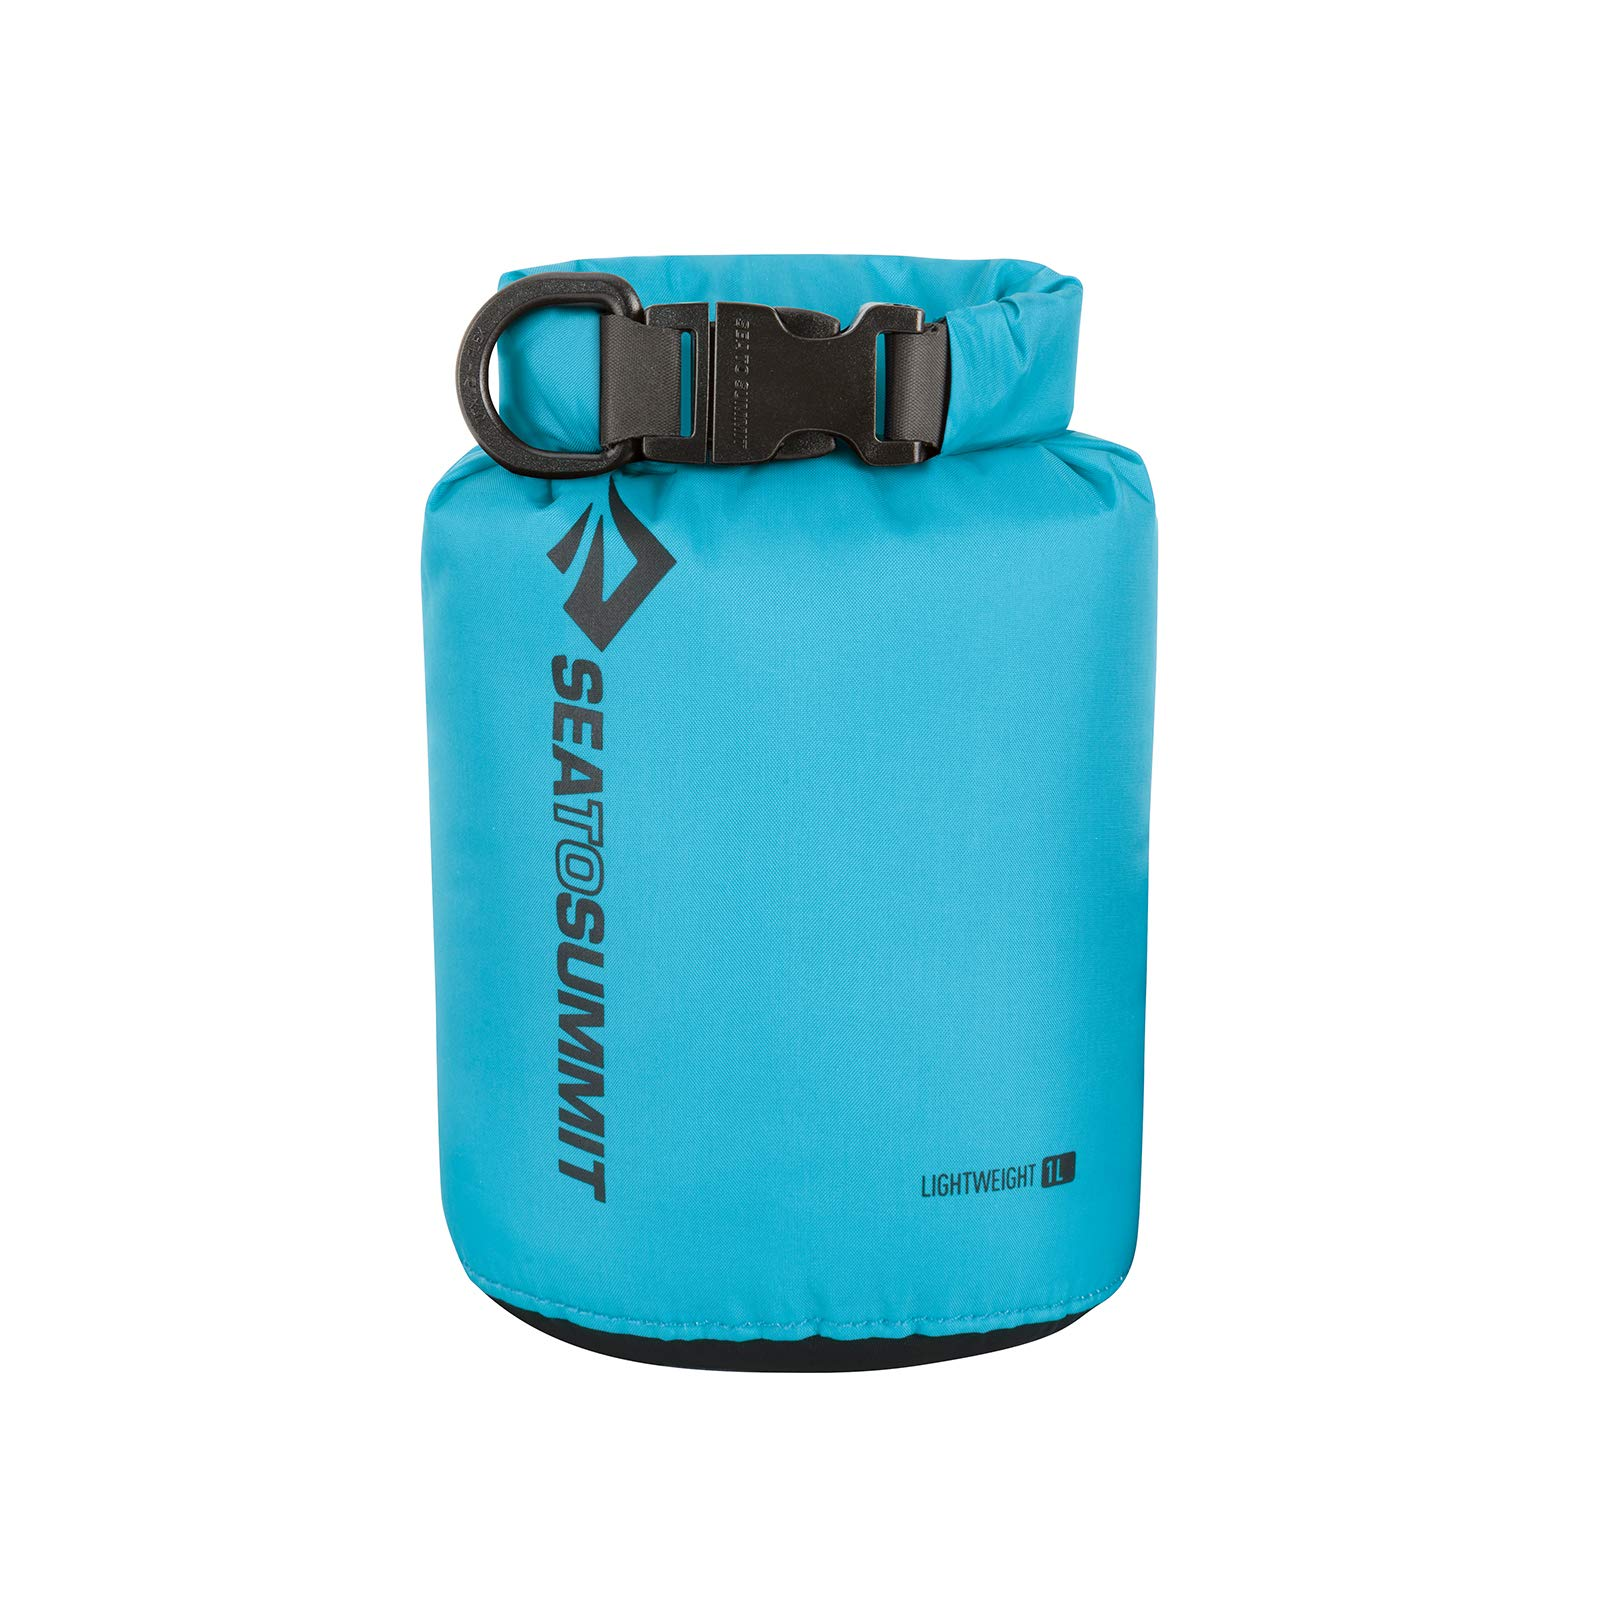 Sea to Summit Lightweight Dry Sack,Blue,XX-Small-1-Liter by Sea to Summit